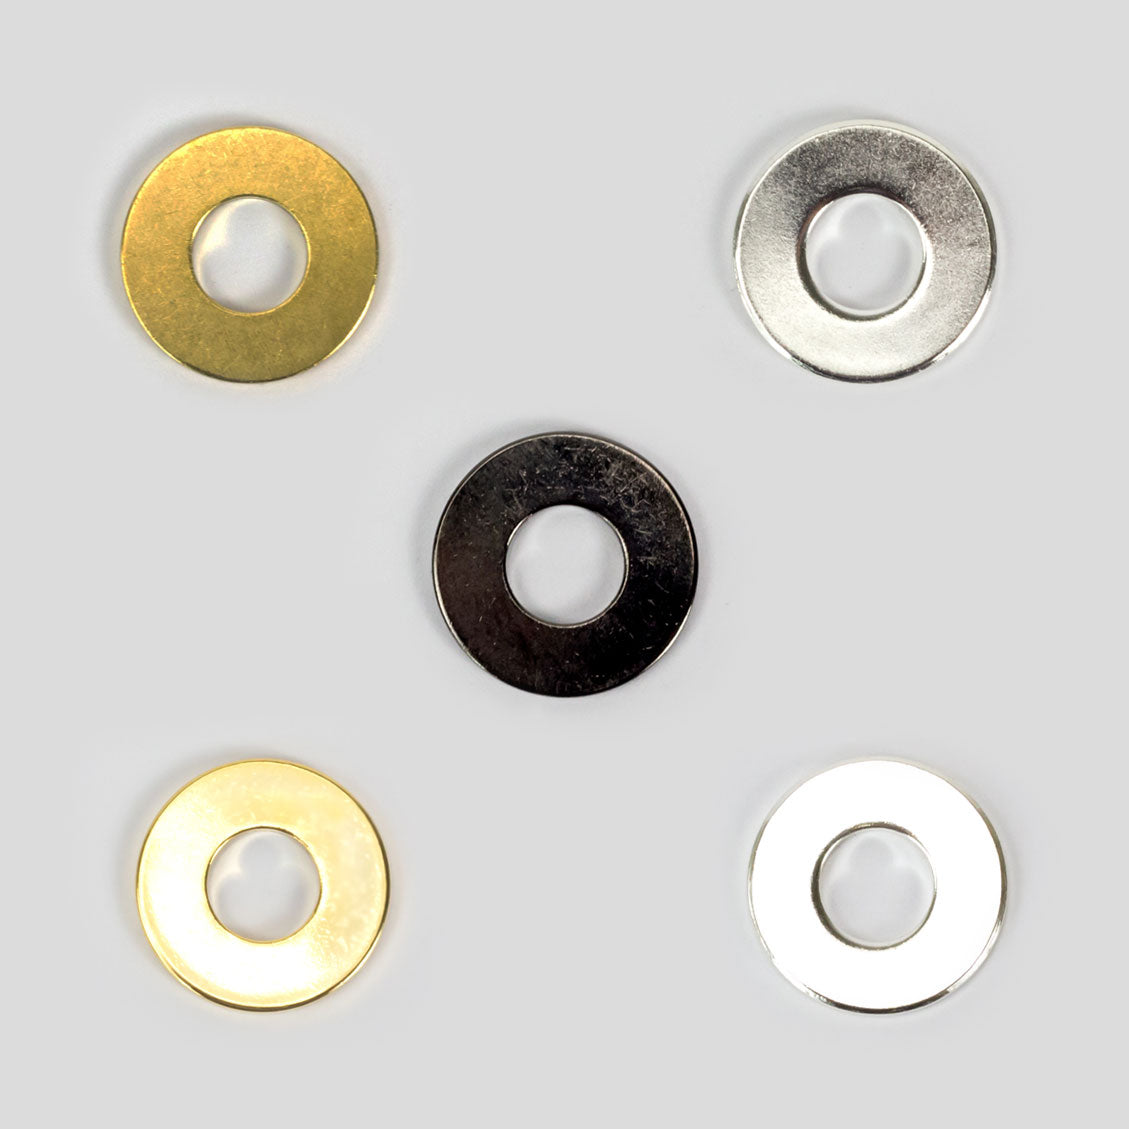 MyIntent Refill Tokens in Brass, Nickel, Gold, Silver, & Black Nickel